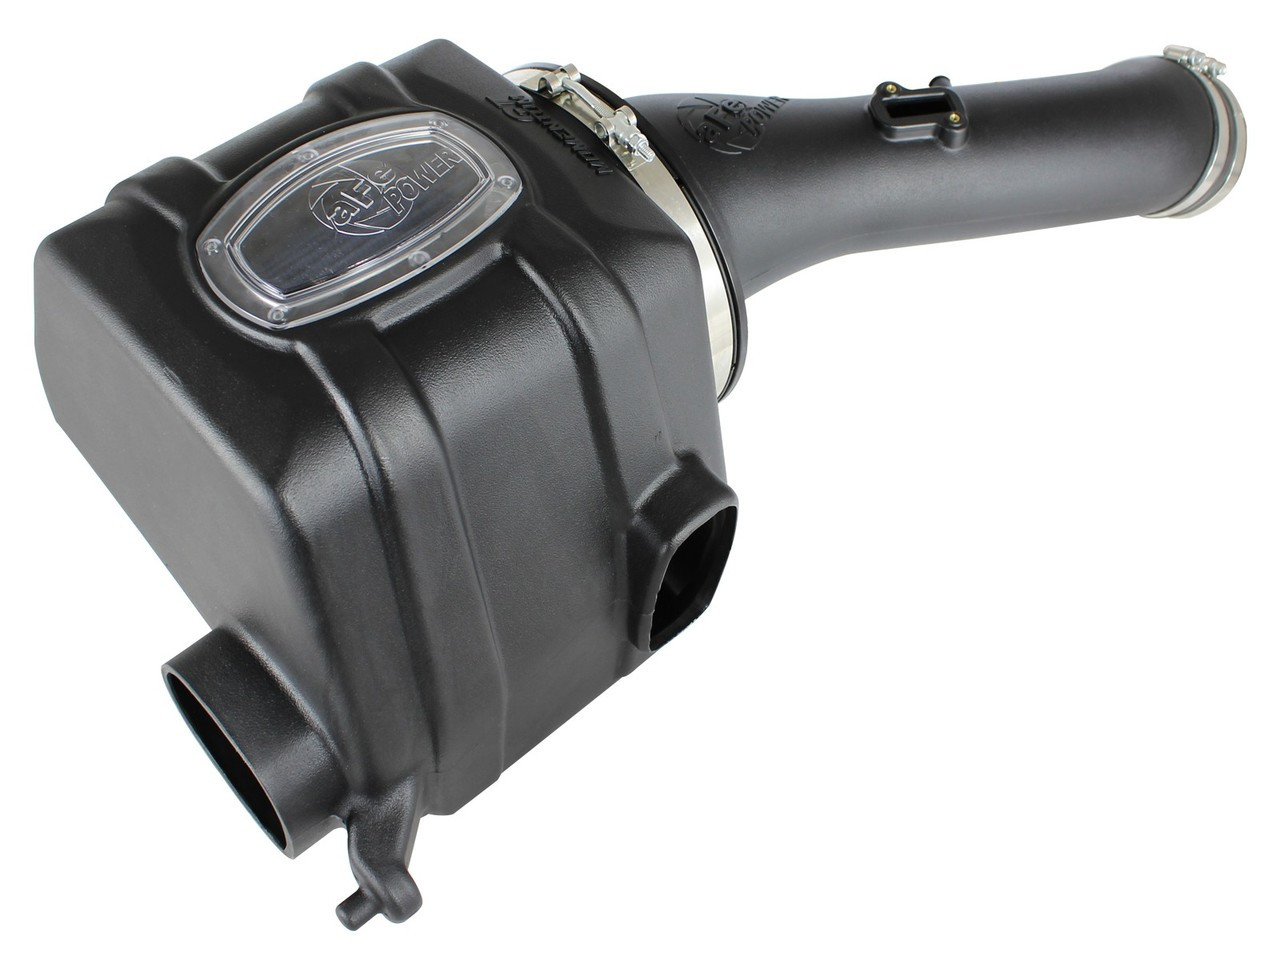 aFe POWER 54-76003 Momentum GT Pro 5R Cold Air Intake System for 07-17 Toyota Tundra V8-5.7L